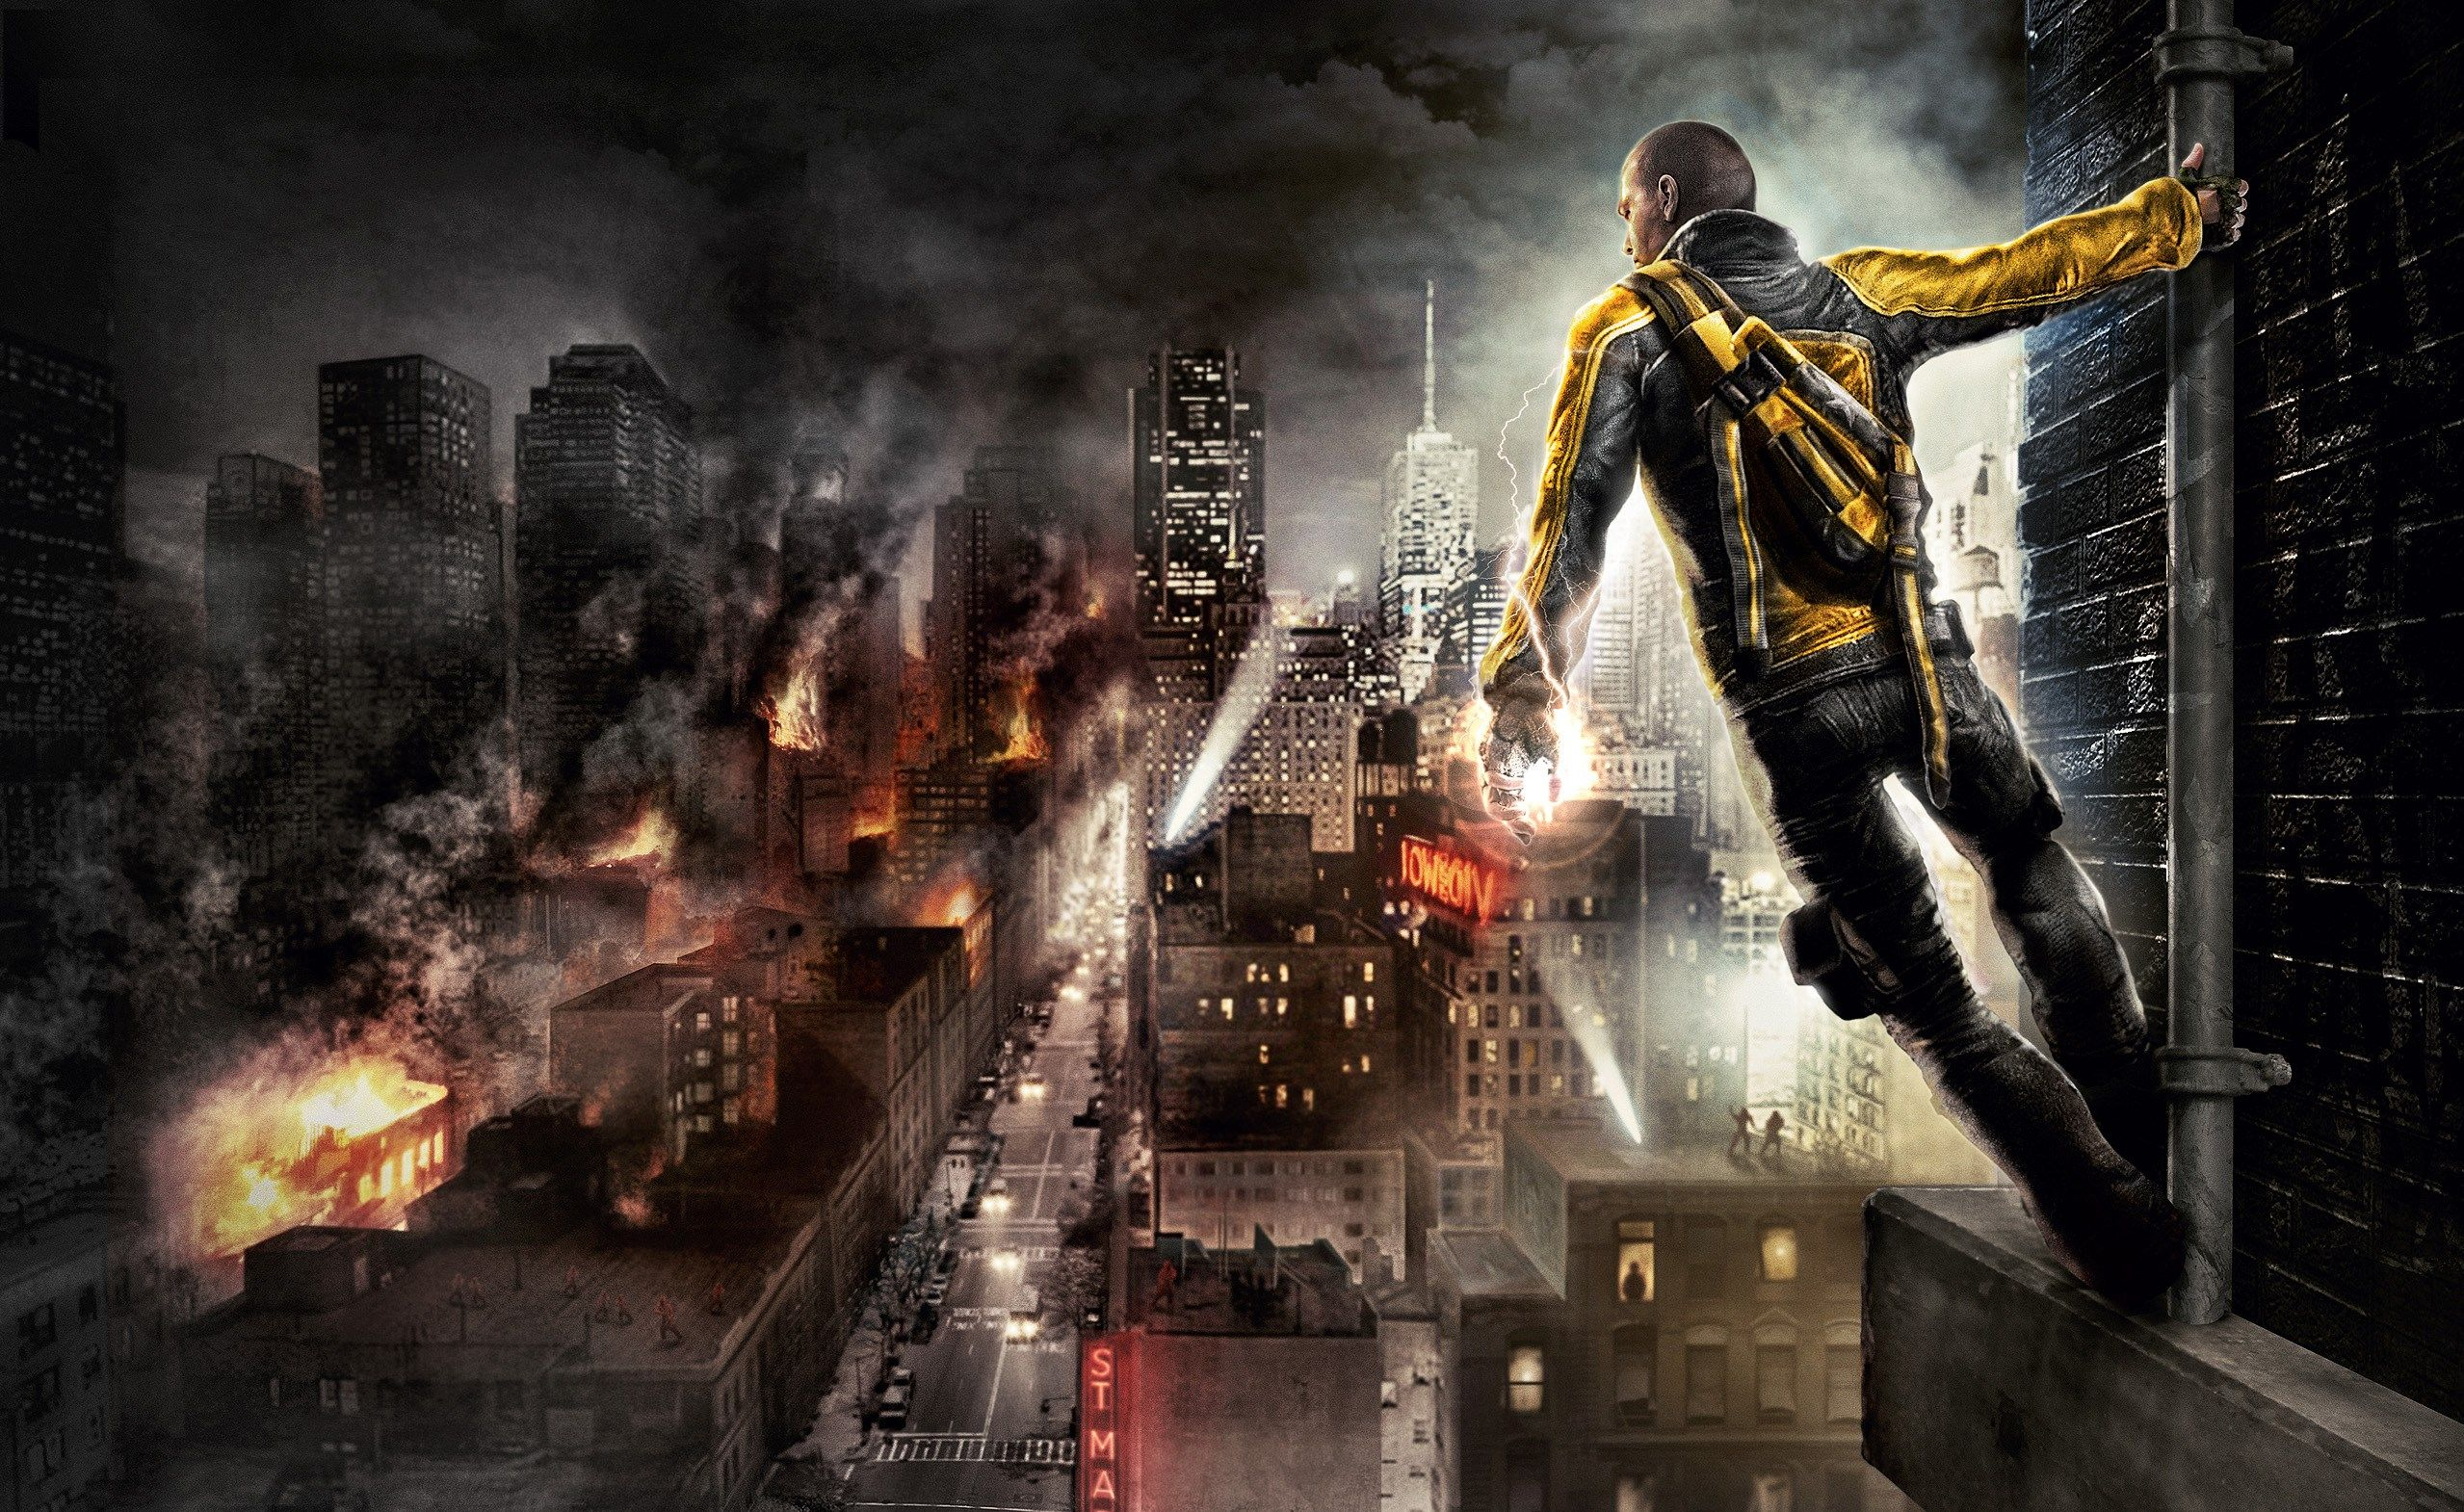 Eldred Mason Free Desktop Wallpaper Downloads Infamous 2558x1570 Px Gaming Wallpapers Hd Pc Games Wallpapers Gaming Wallpapers